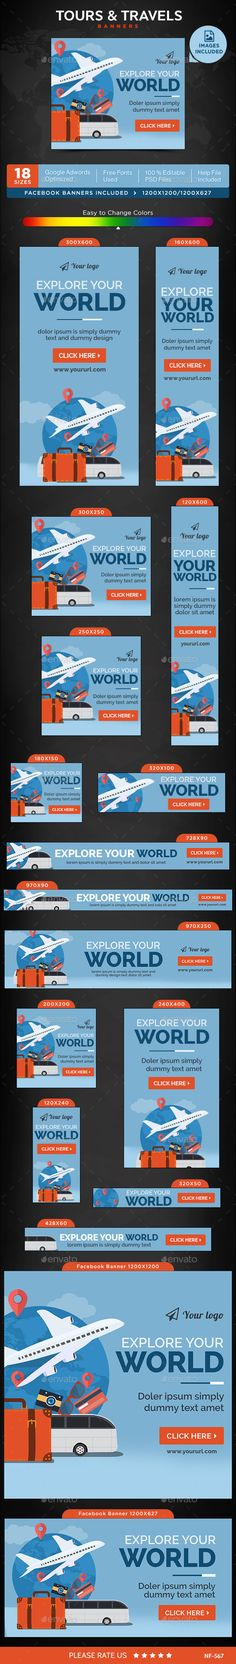 Tours & Travels Banners Template #design #ads #web Download: http://graphicriver.net/item/tours-travels-banners/12473387?ref=ksioks